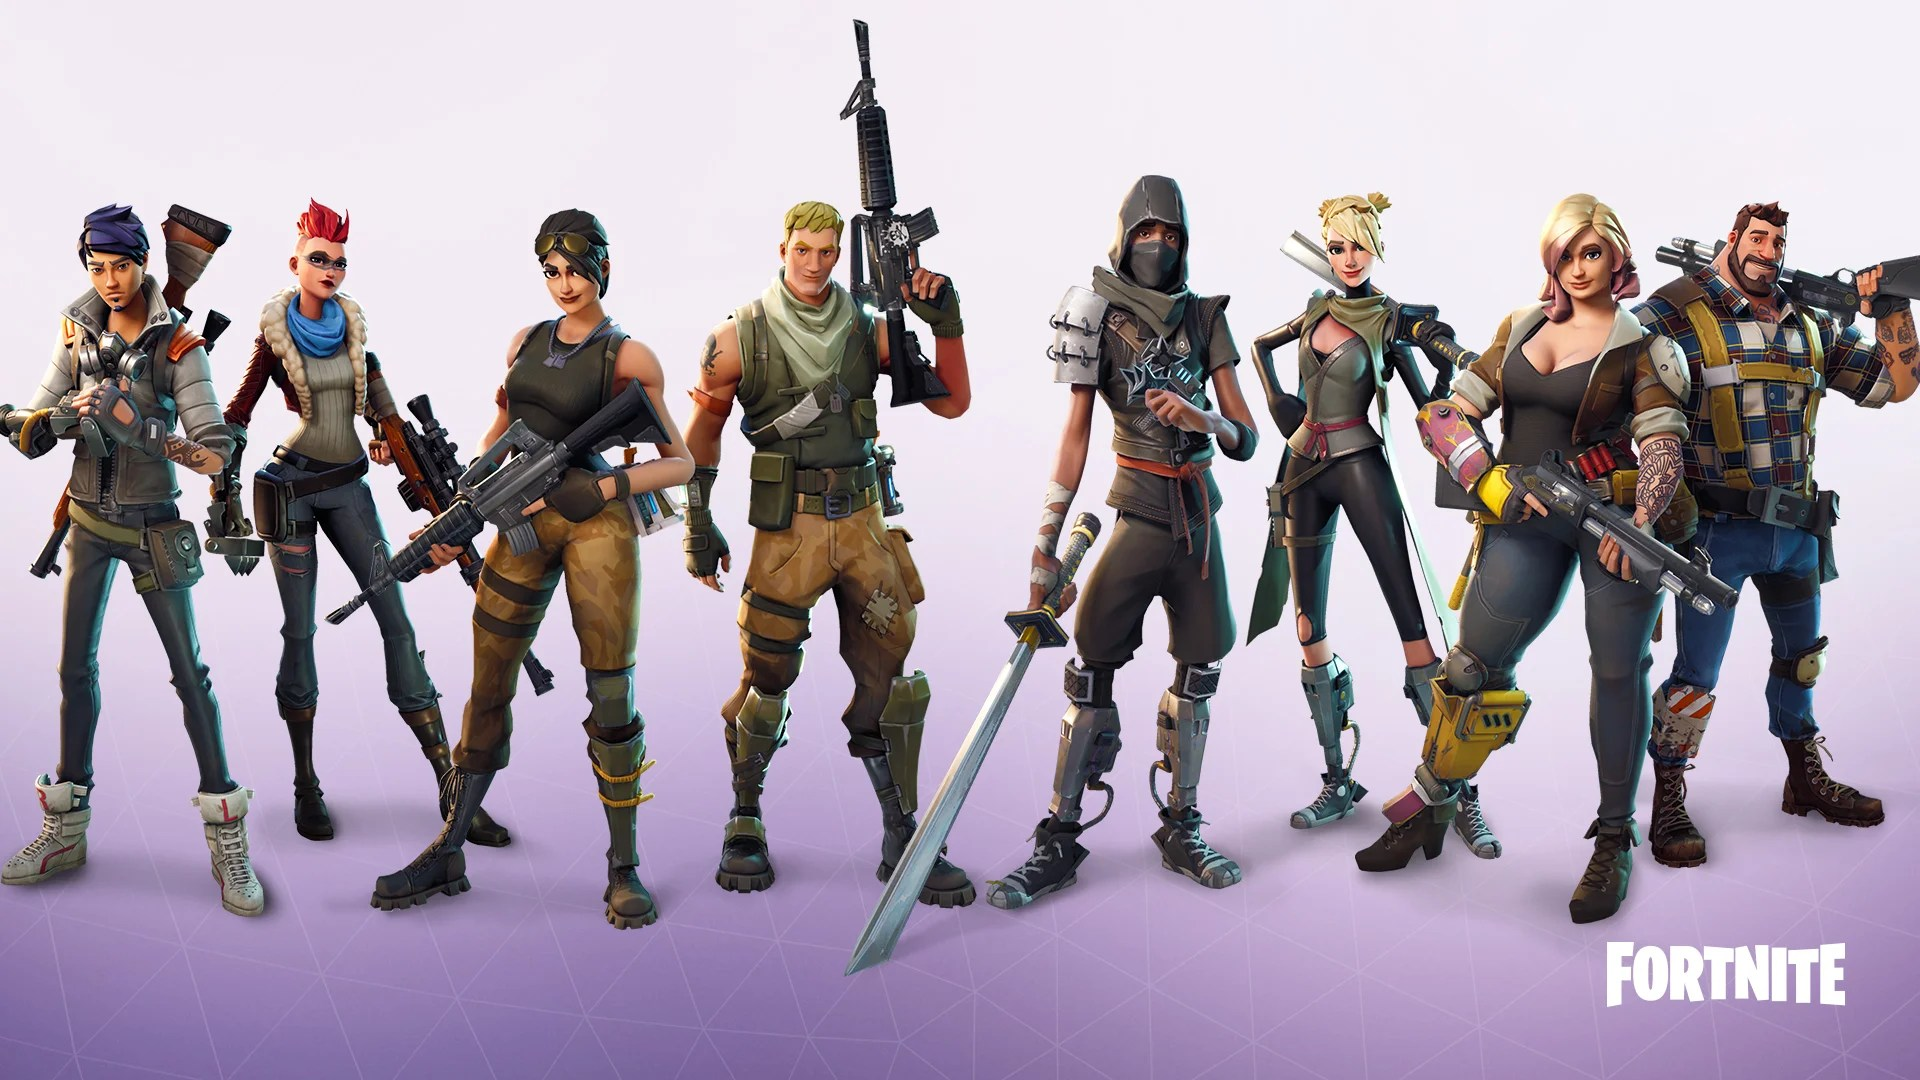 Iphone X Fornite Wallpapers Fortnite For Android All The News And Rumours About The